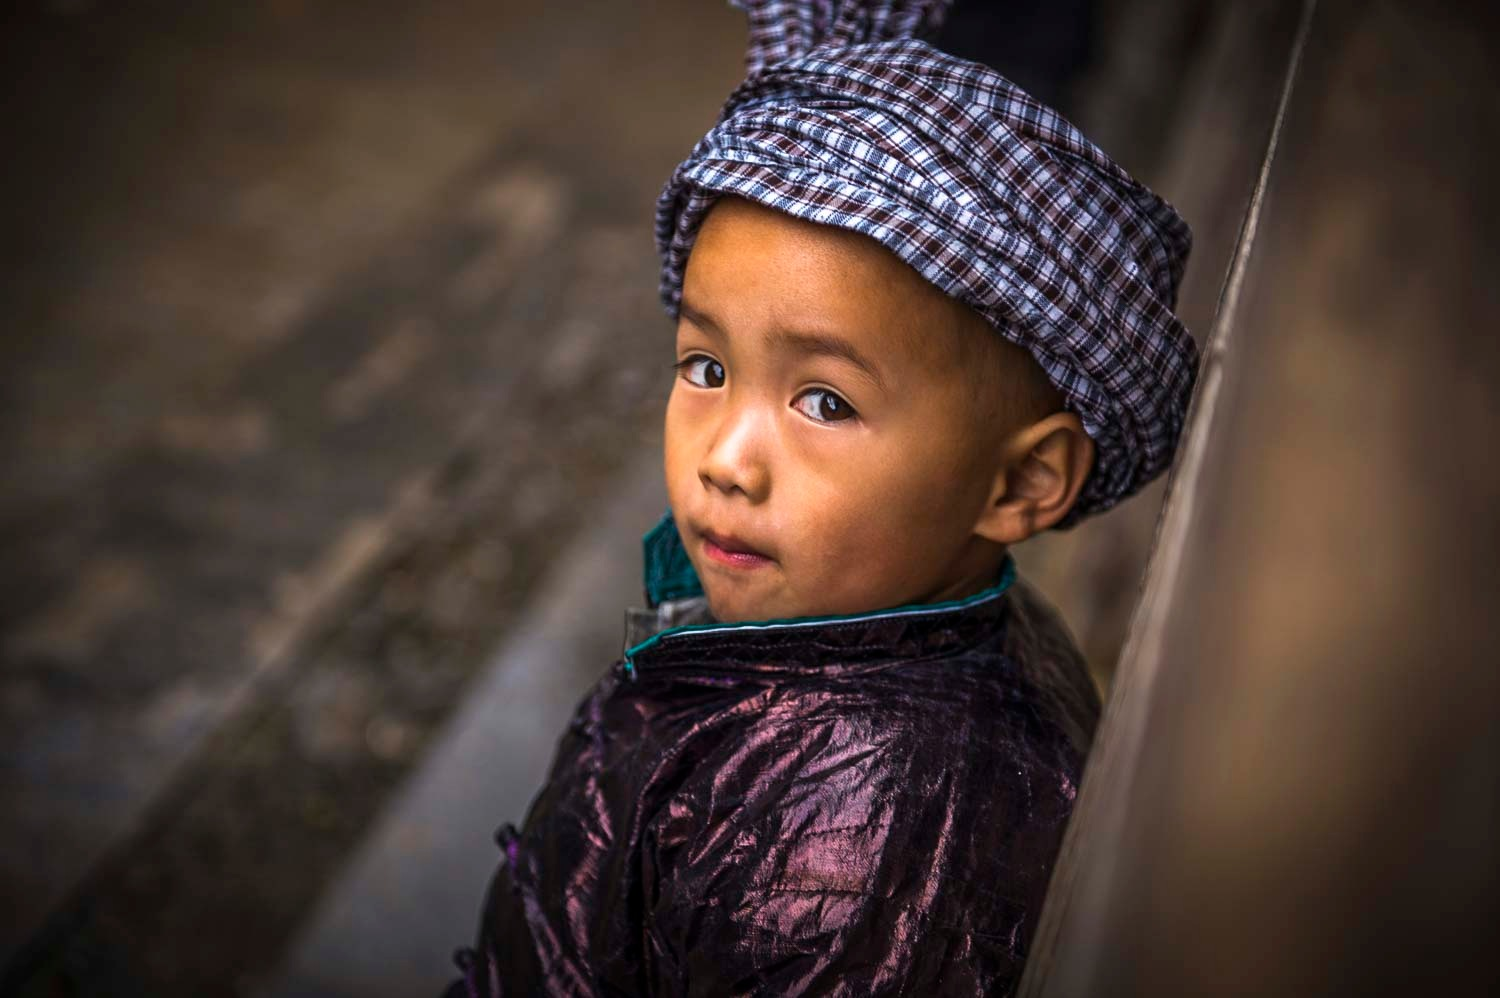 Chineese Boy by Susan Laurie